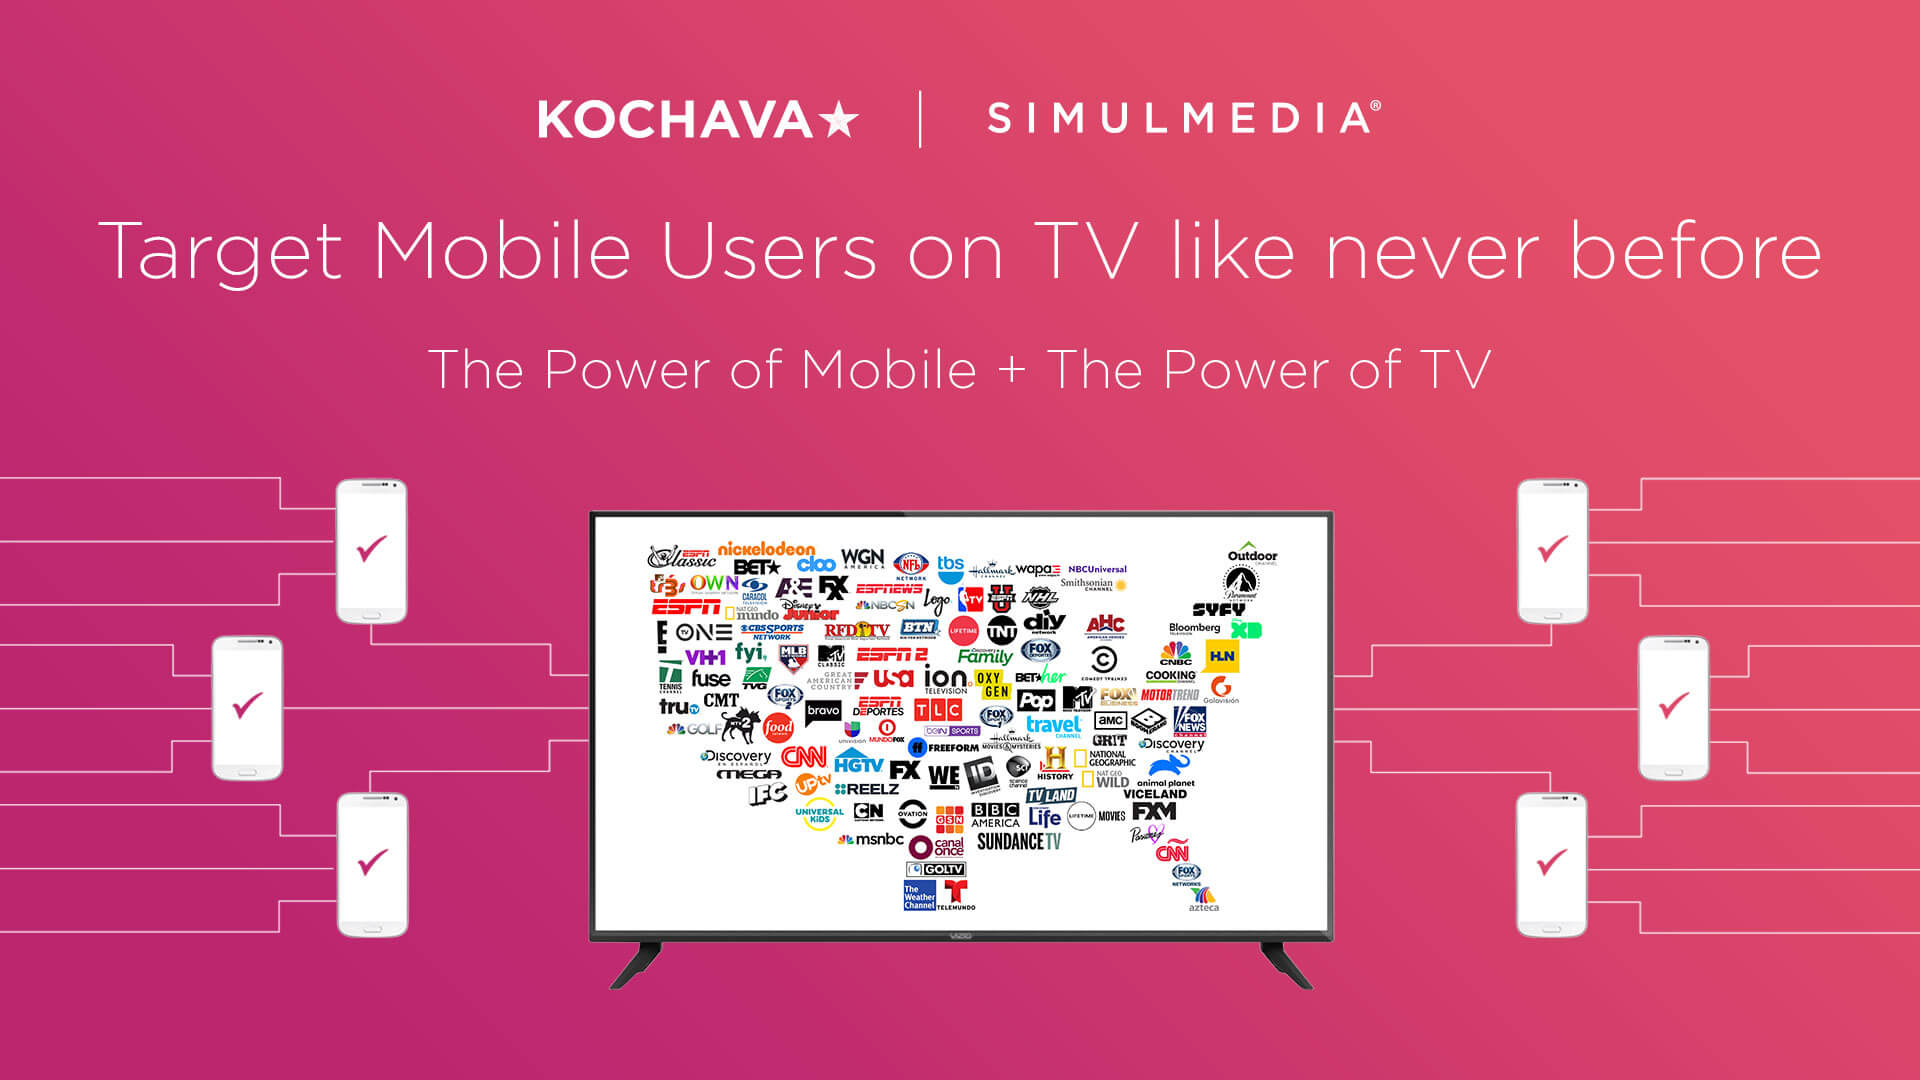 Kochava and Simulmedia partnership